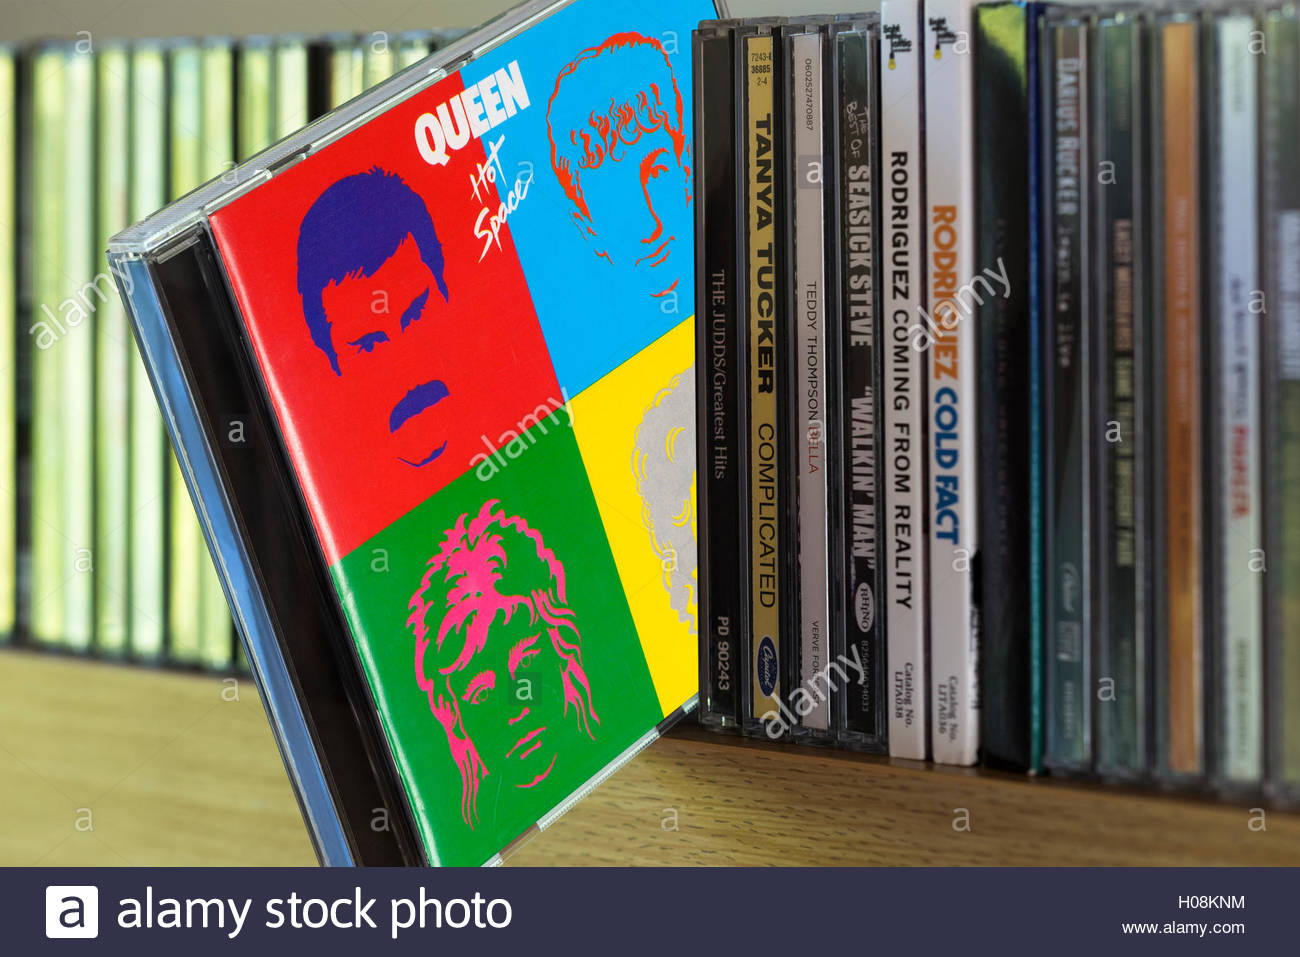 Queen album Hot Space CD pulled out from among other CD's on a shelf Stock Photo